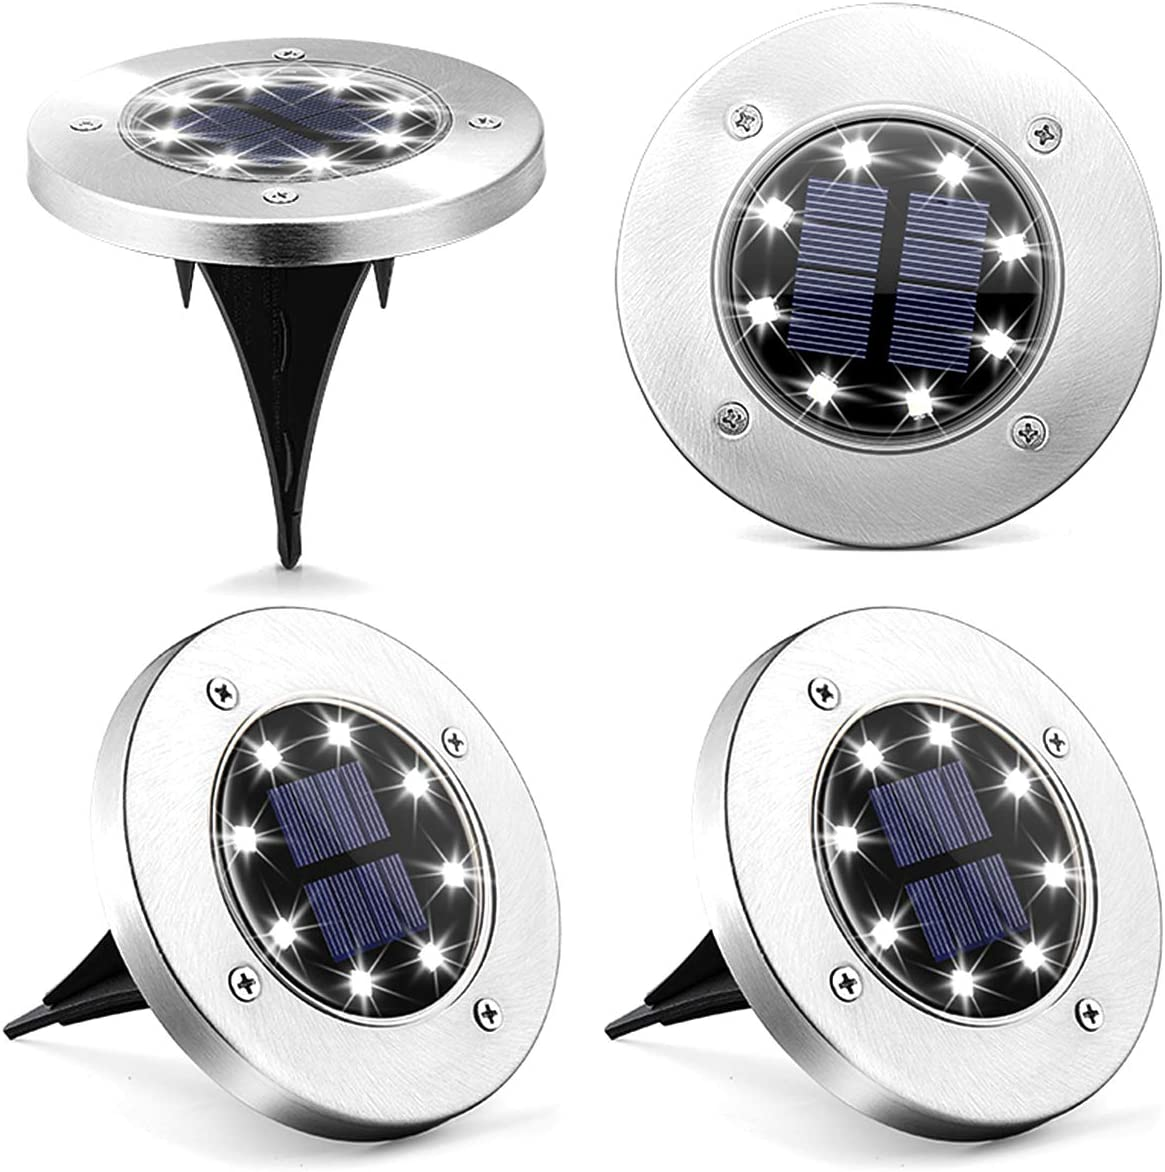 Solpex Solar Ground Lights 4 Pack, 8 LED Solar Powered Disk Lights Outdoor Waterproof Garden Landscape Lighting for Yard Deck Lawn Patio Pathway Walkway (White)